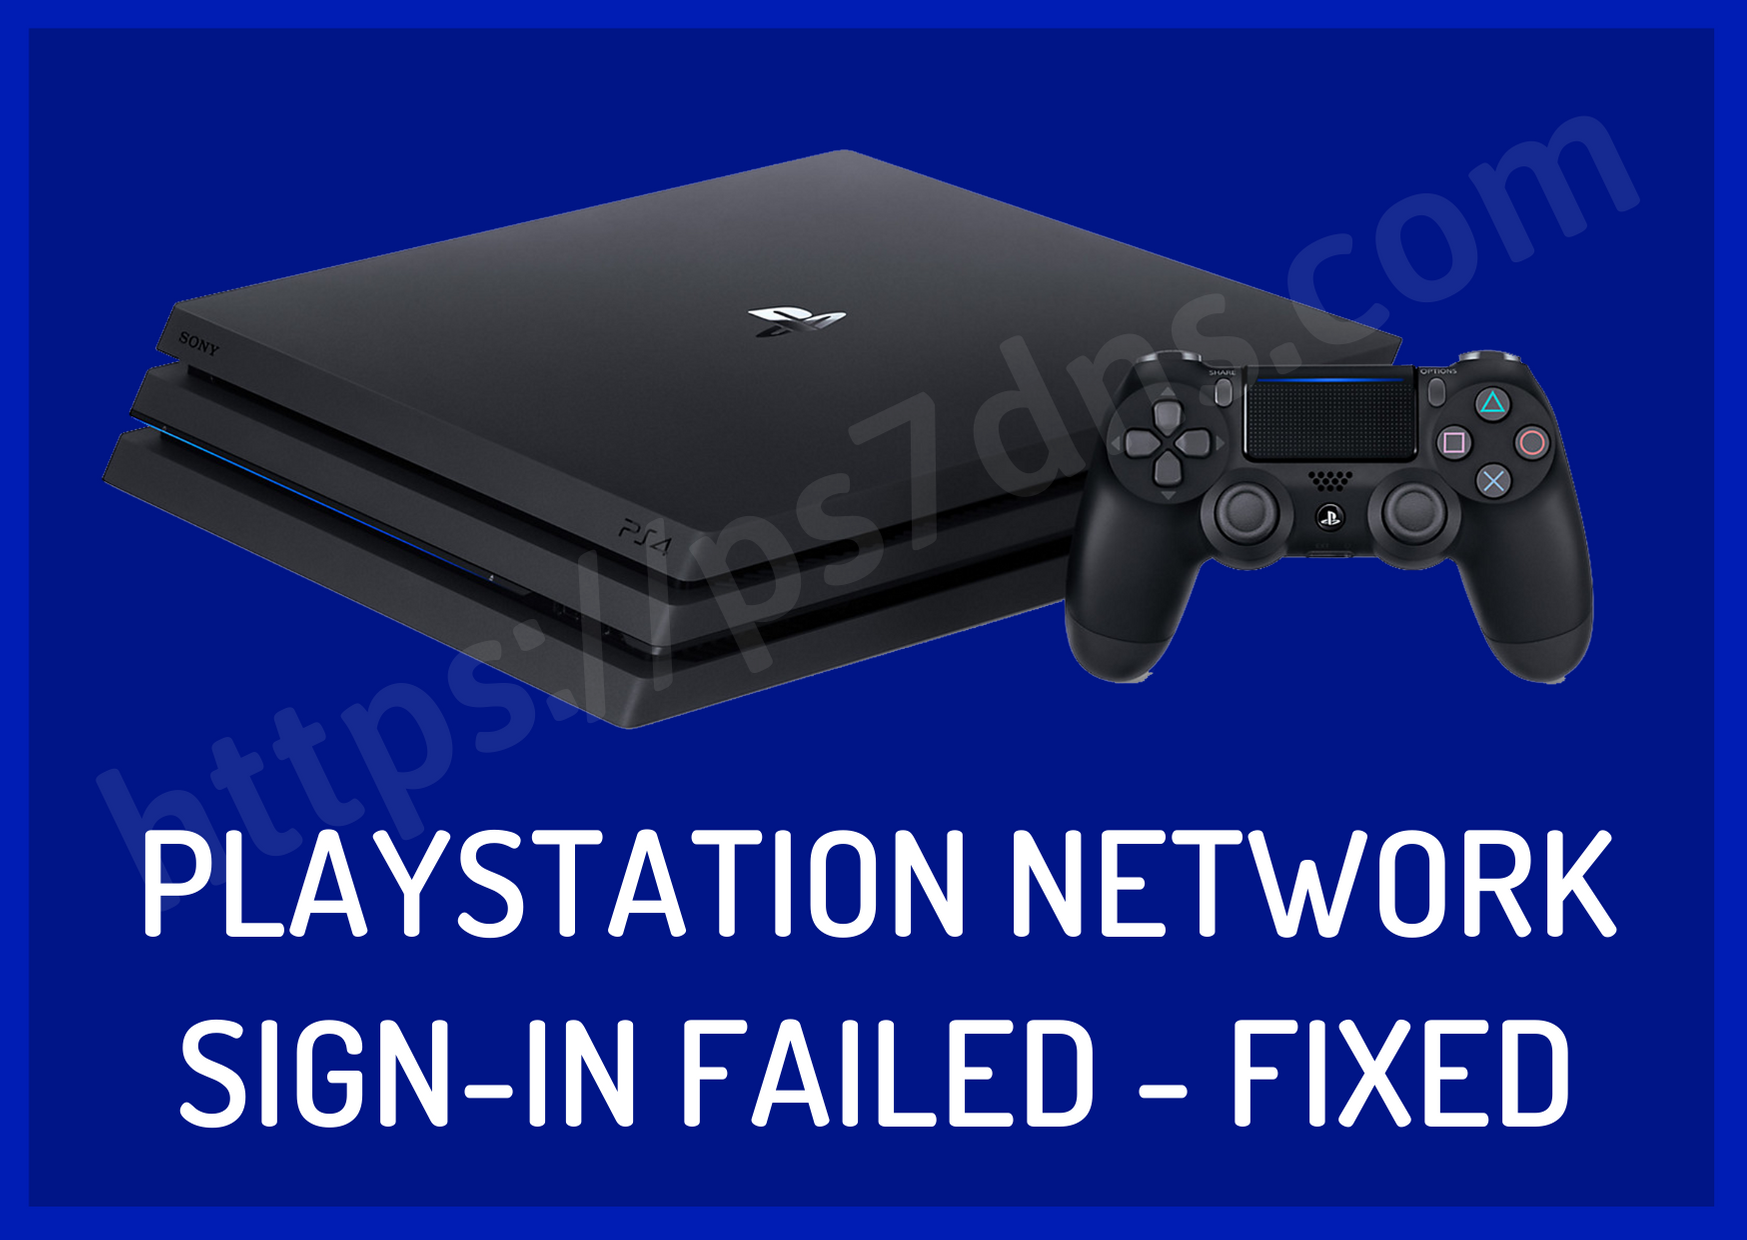 PlayStation Network Sign-in Failed - Fixed